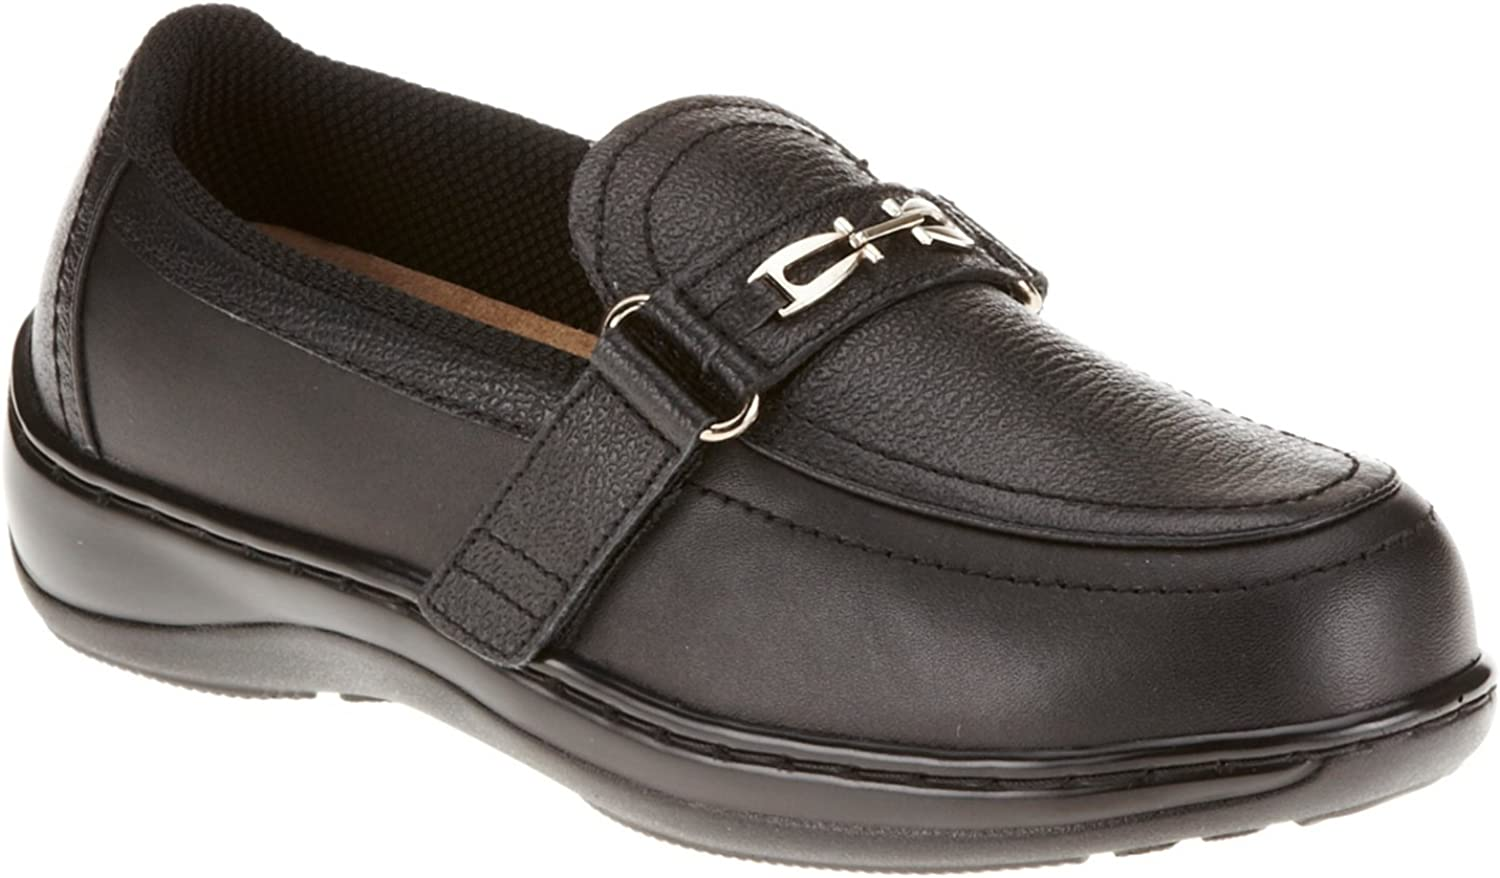 ORTHOFEET 817 CHELSEA (9 EXTRA WIDE)